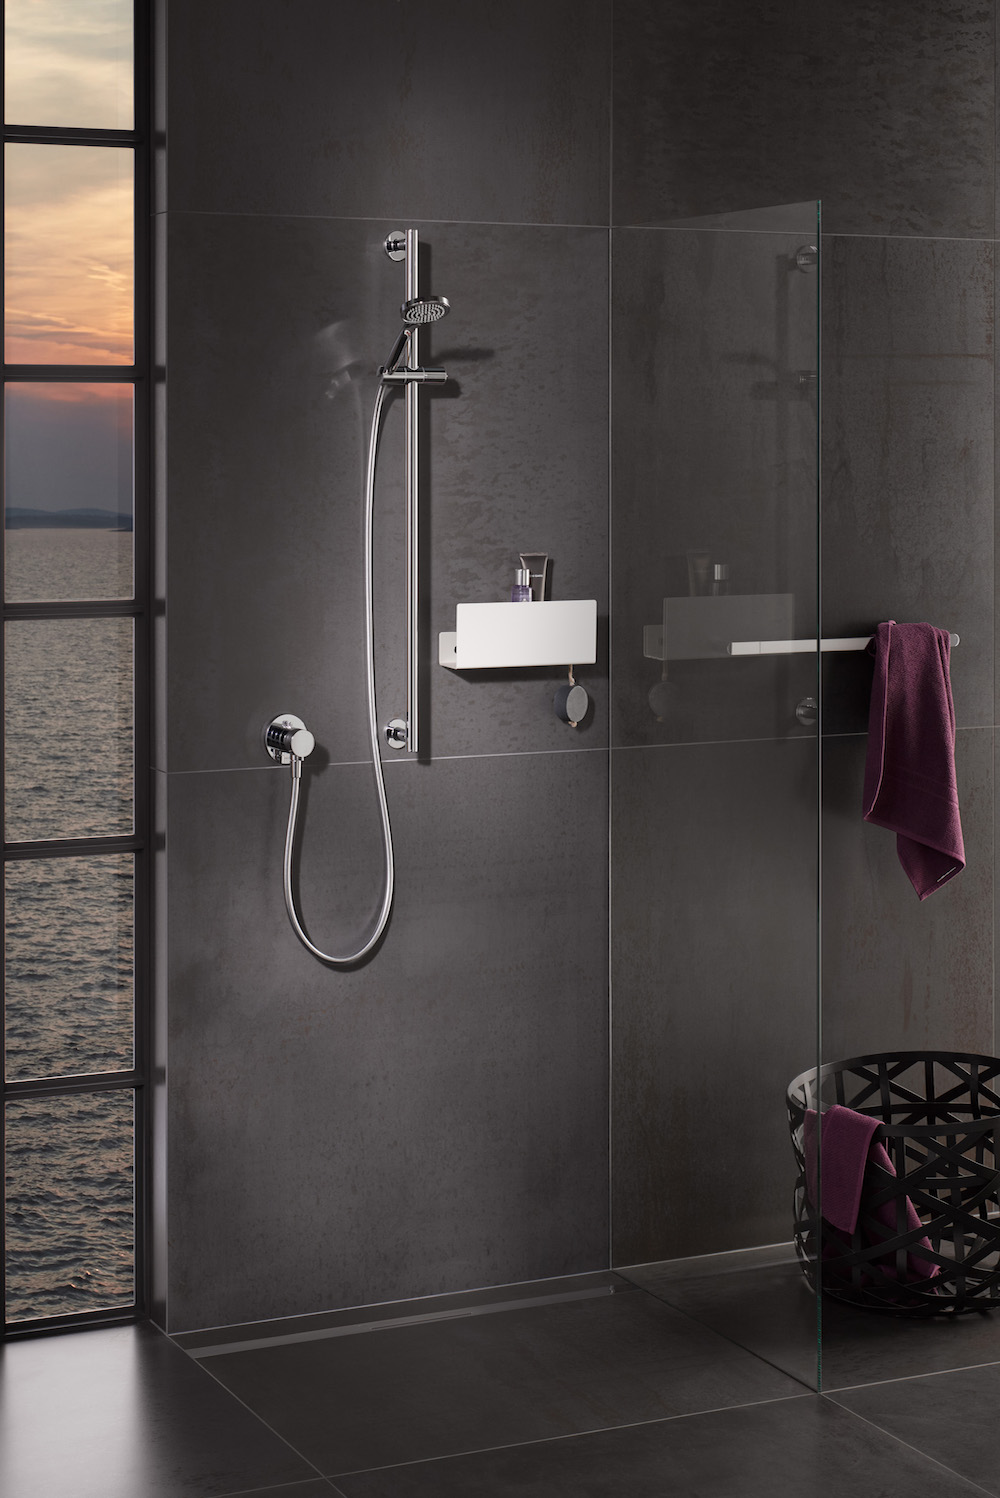 Image of a modern shower with black background